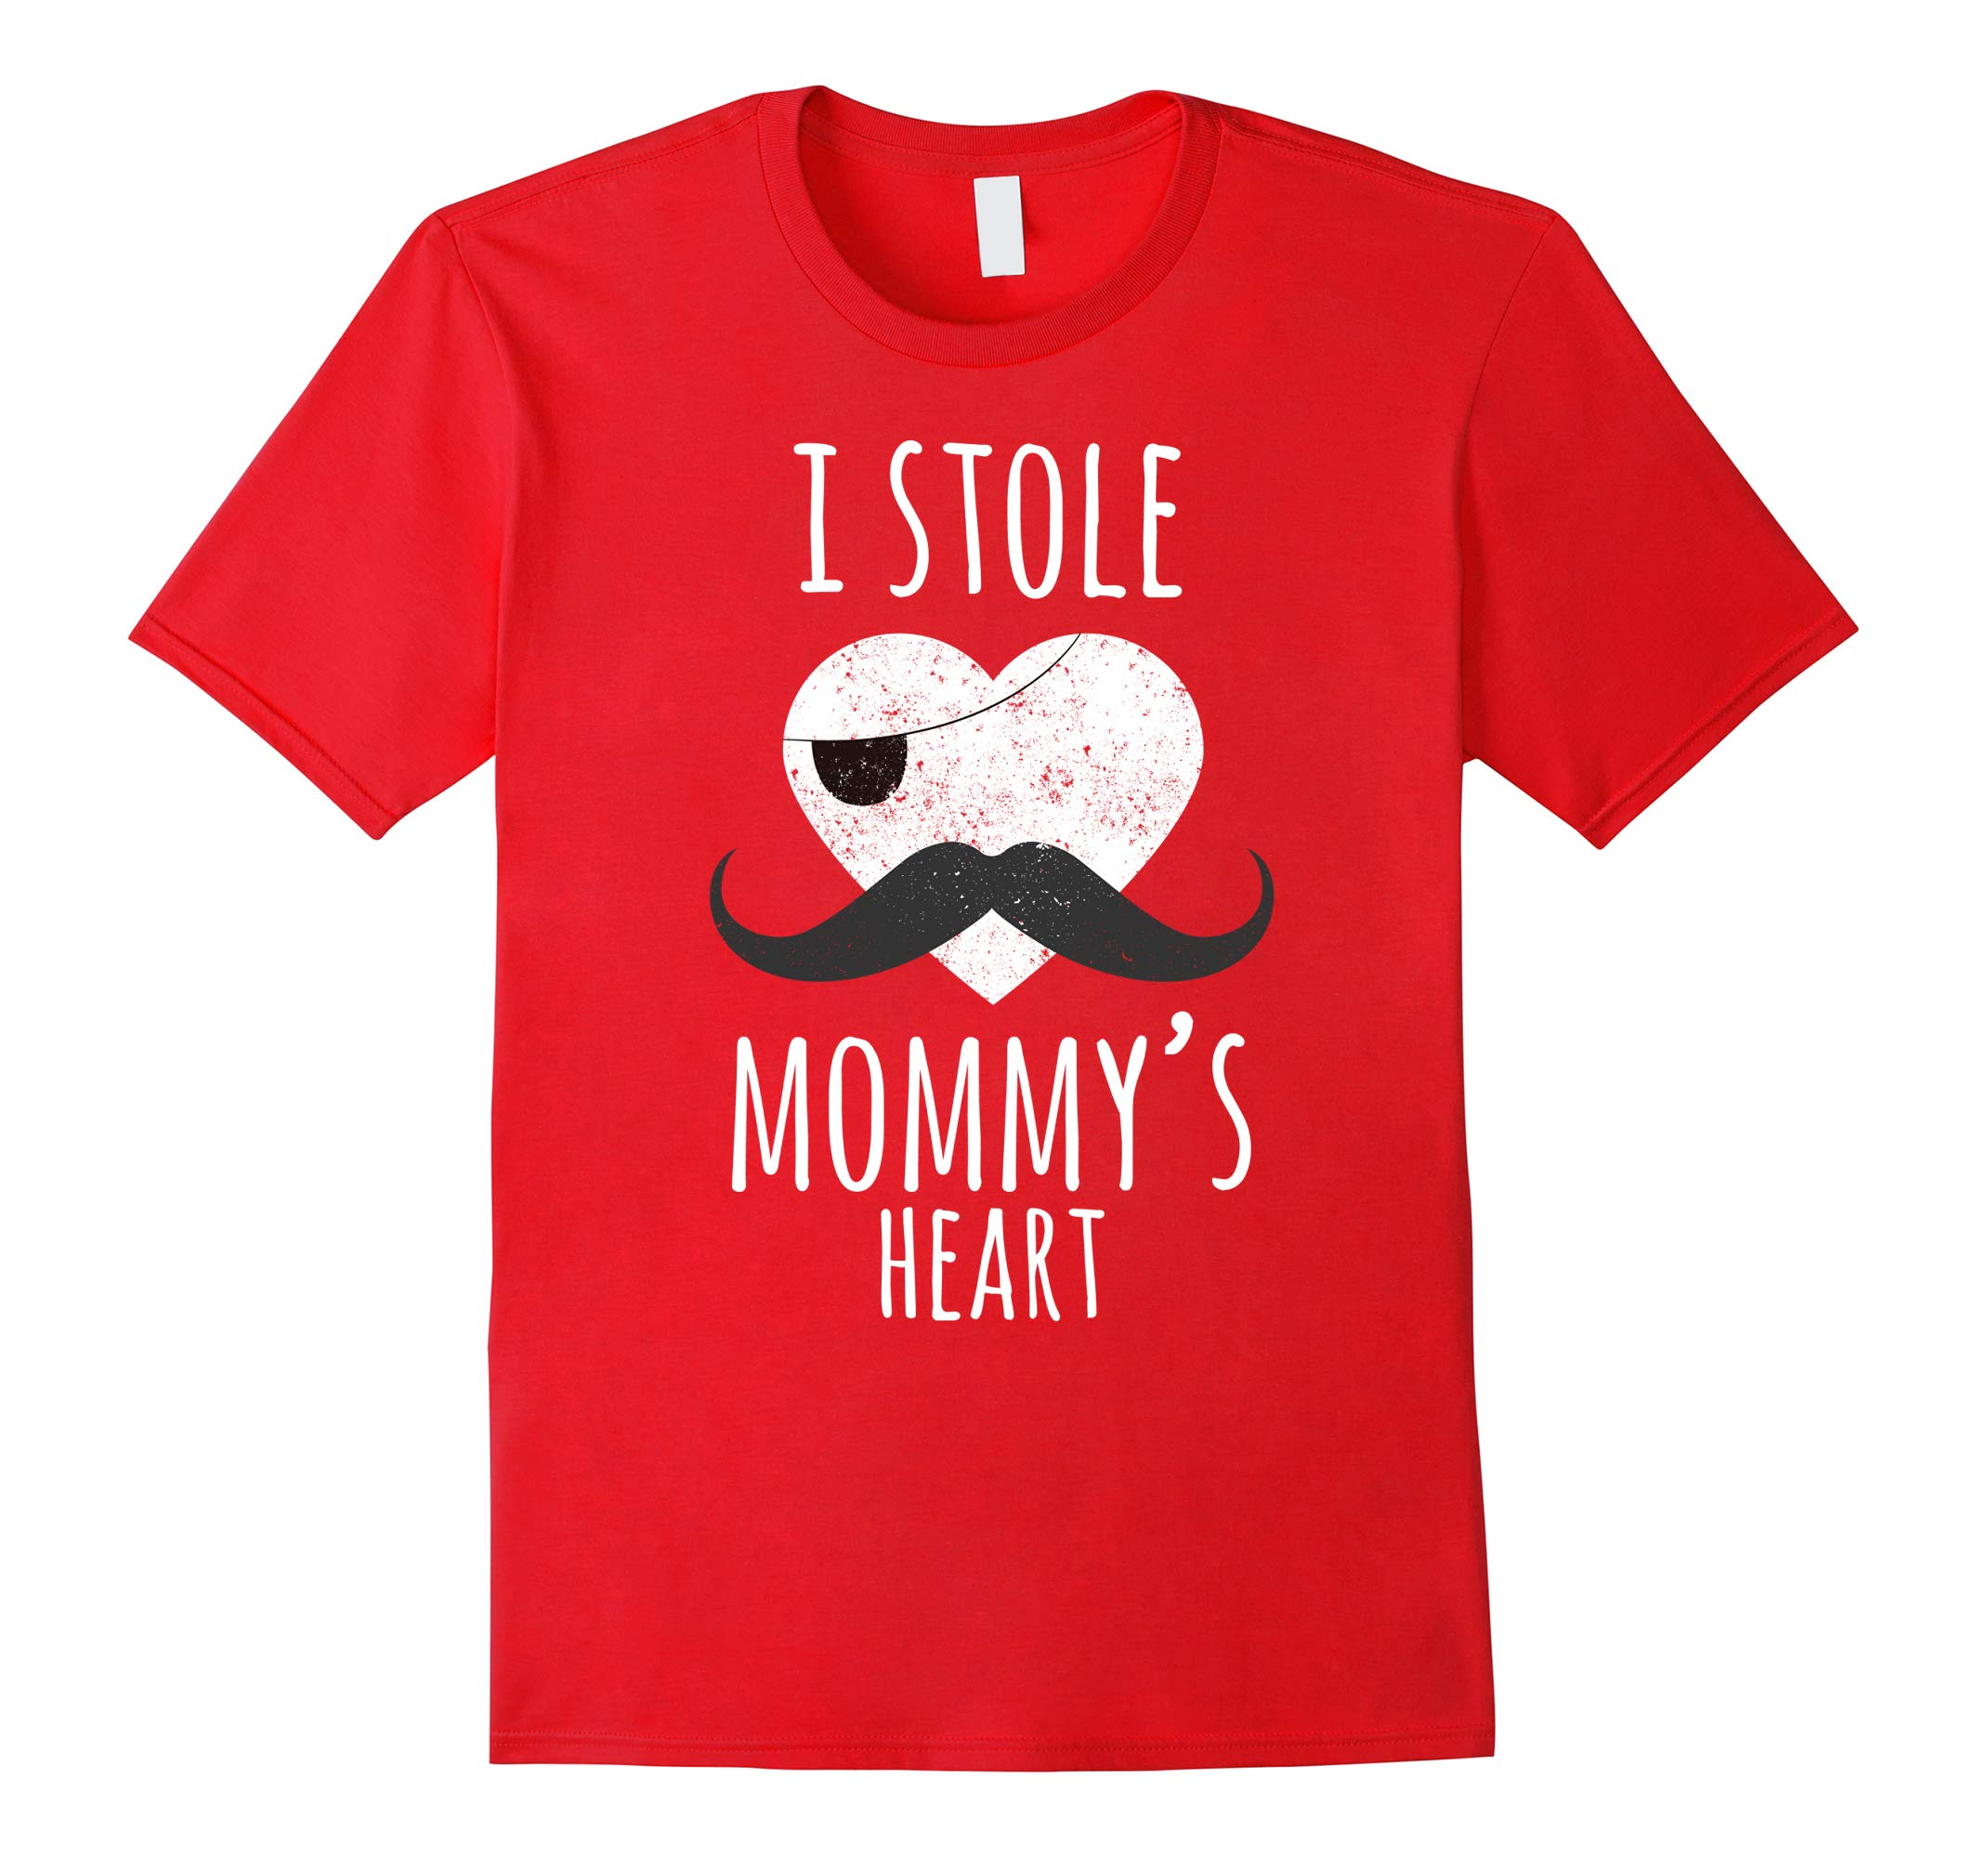 Valentines Day Shirts for Boys, I Stole Mommy's Heart Funny-RT